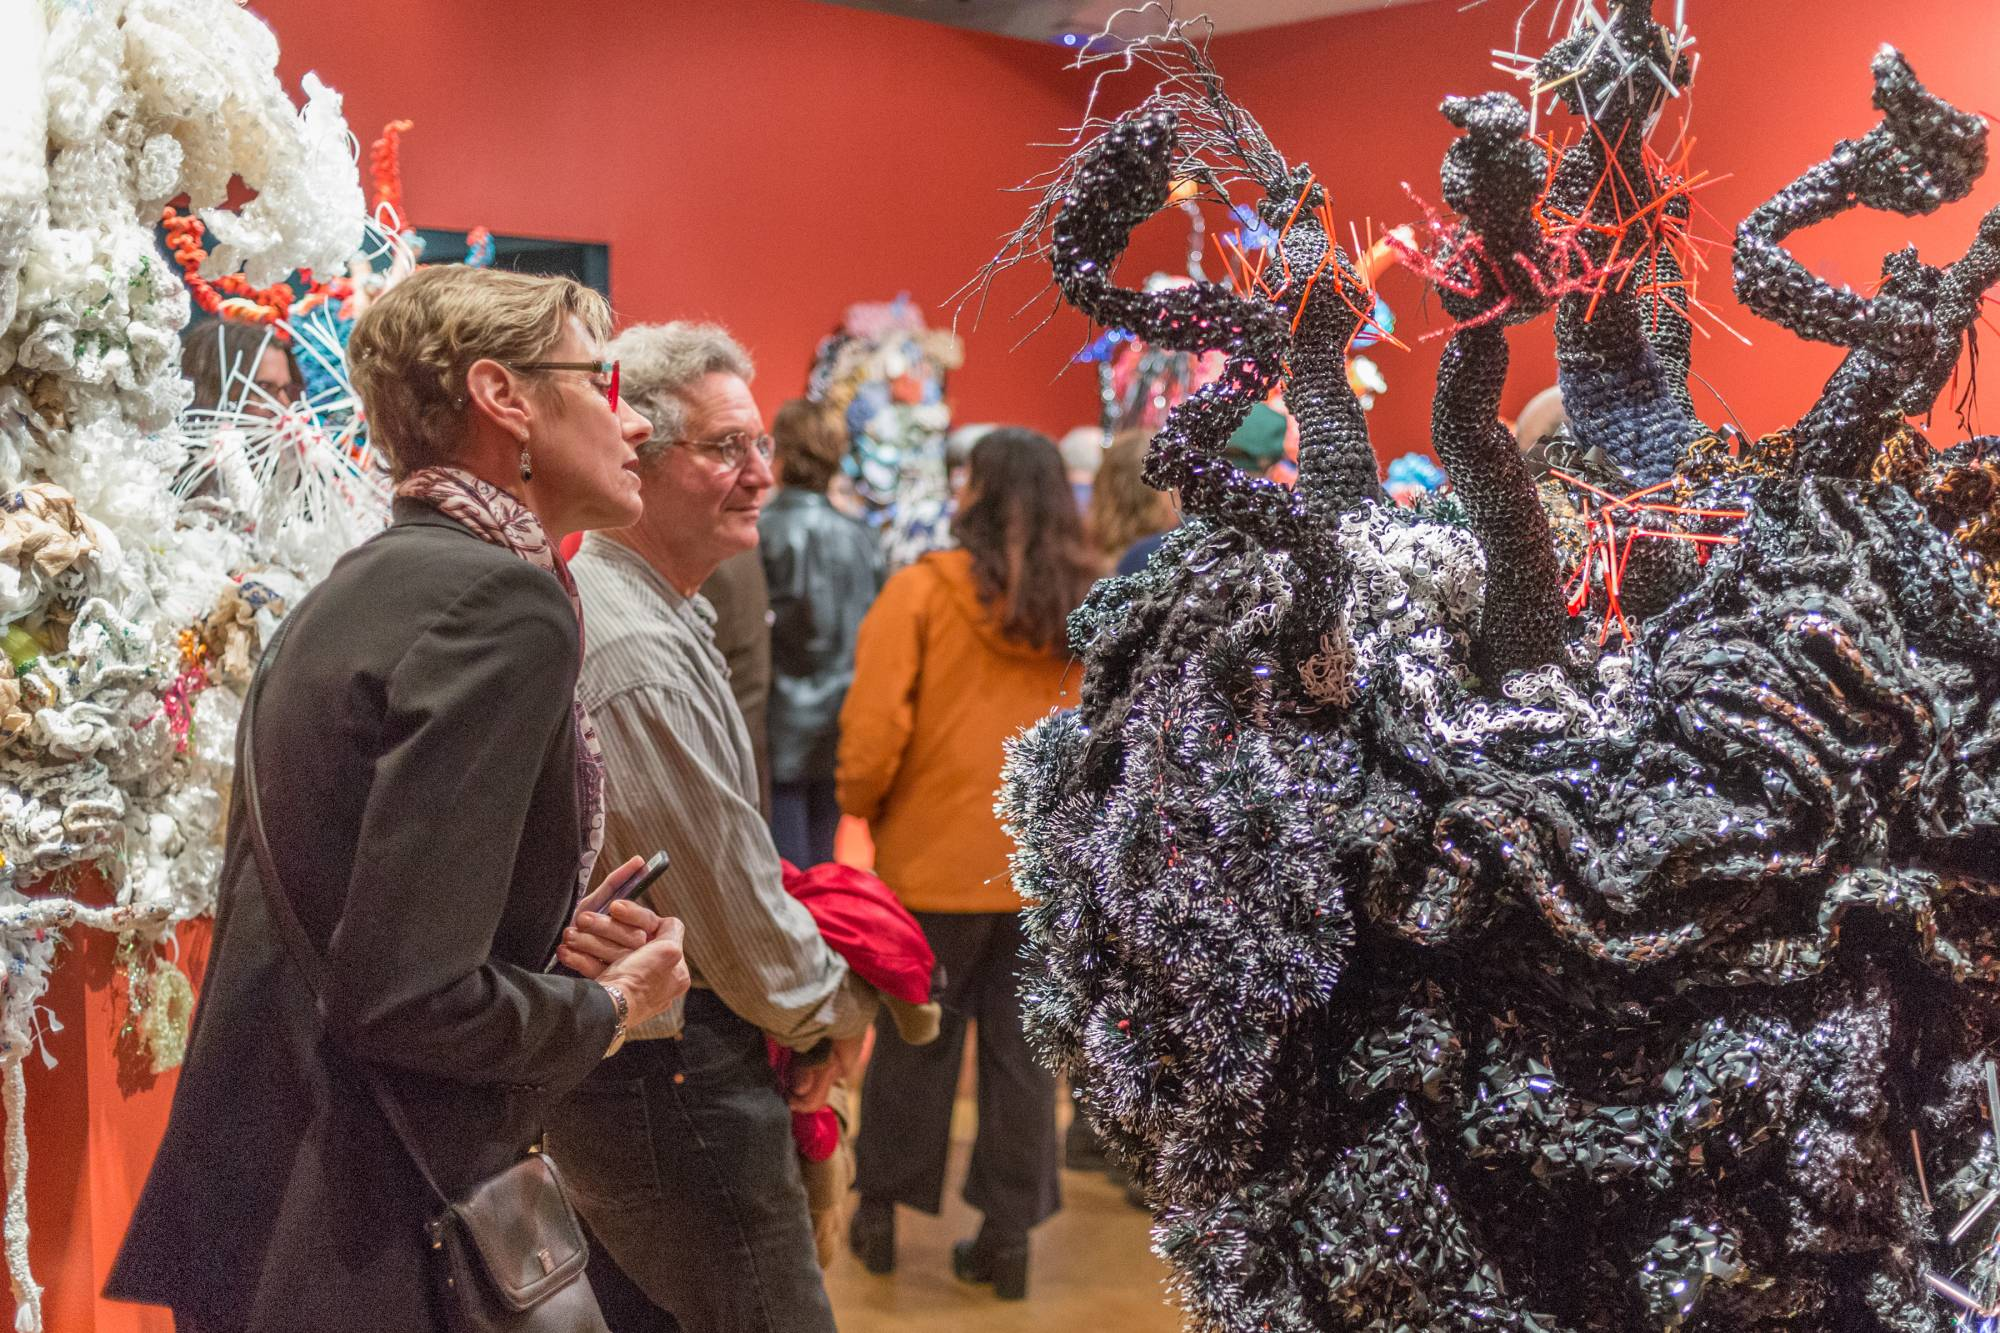 people standing among and looking at sculptures of a giant coral forest